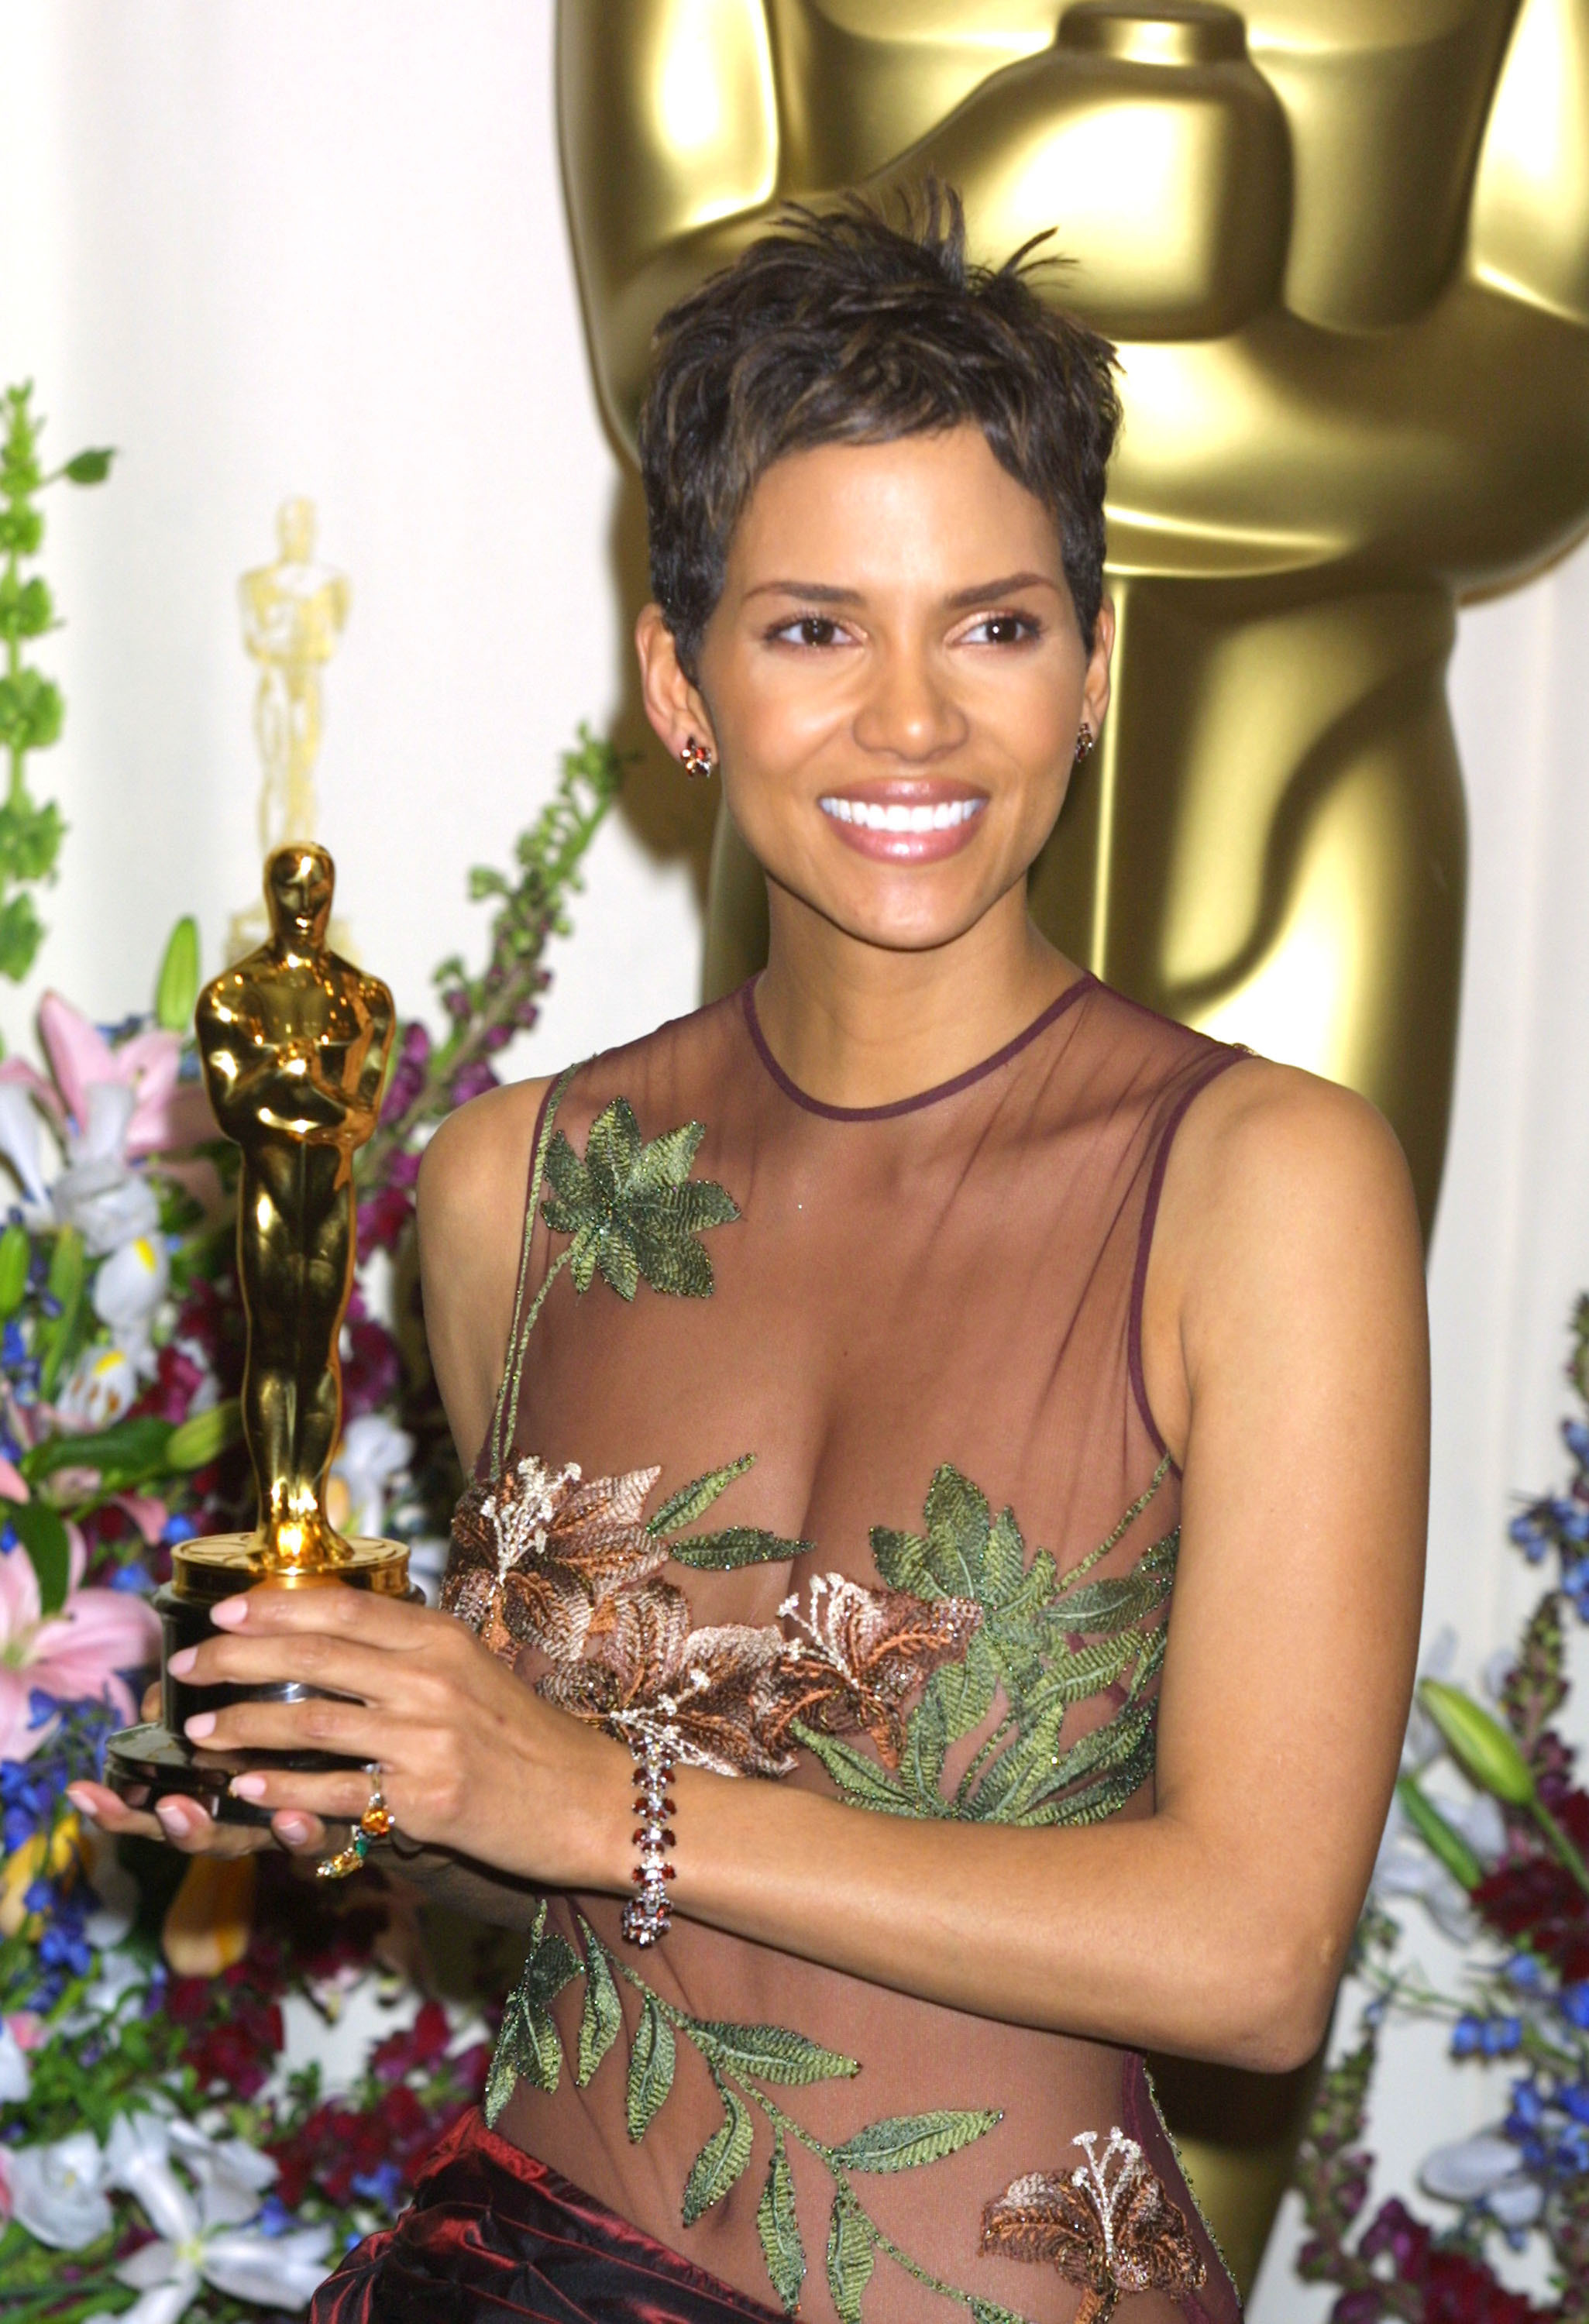 Halle Berry is shown at the  74th Annual Academy Awards in Hollywood, California on March 24, 2002.